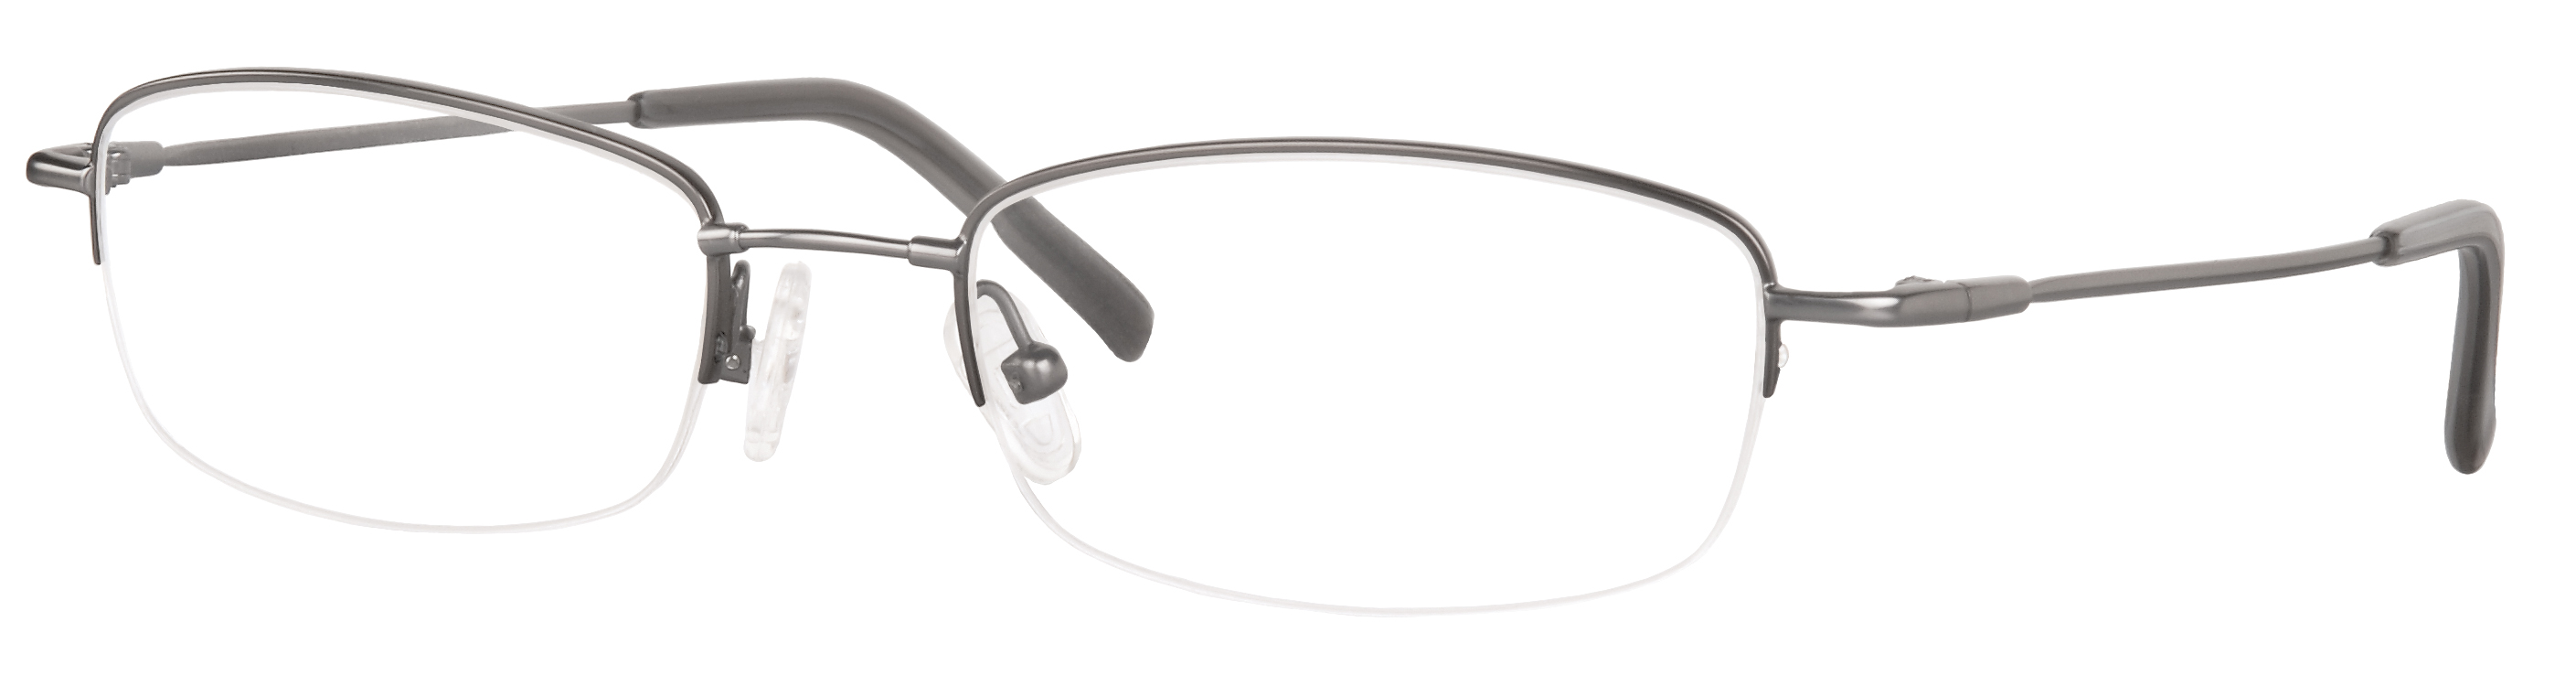 titanium eyewear  Cheaper-EyeGlasses.com USA Prescription EyeGlasses for Less ...